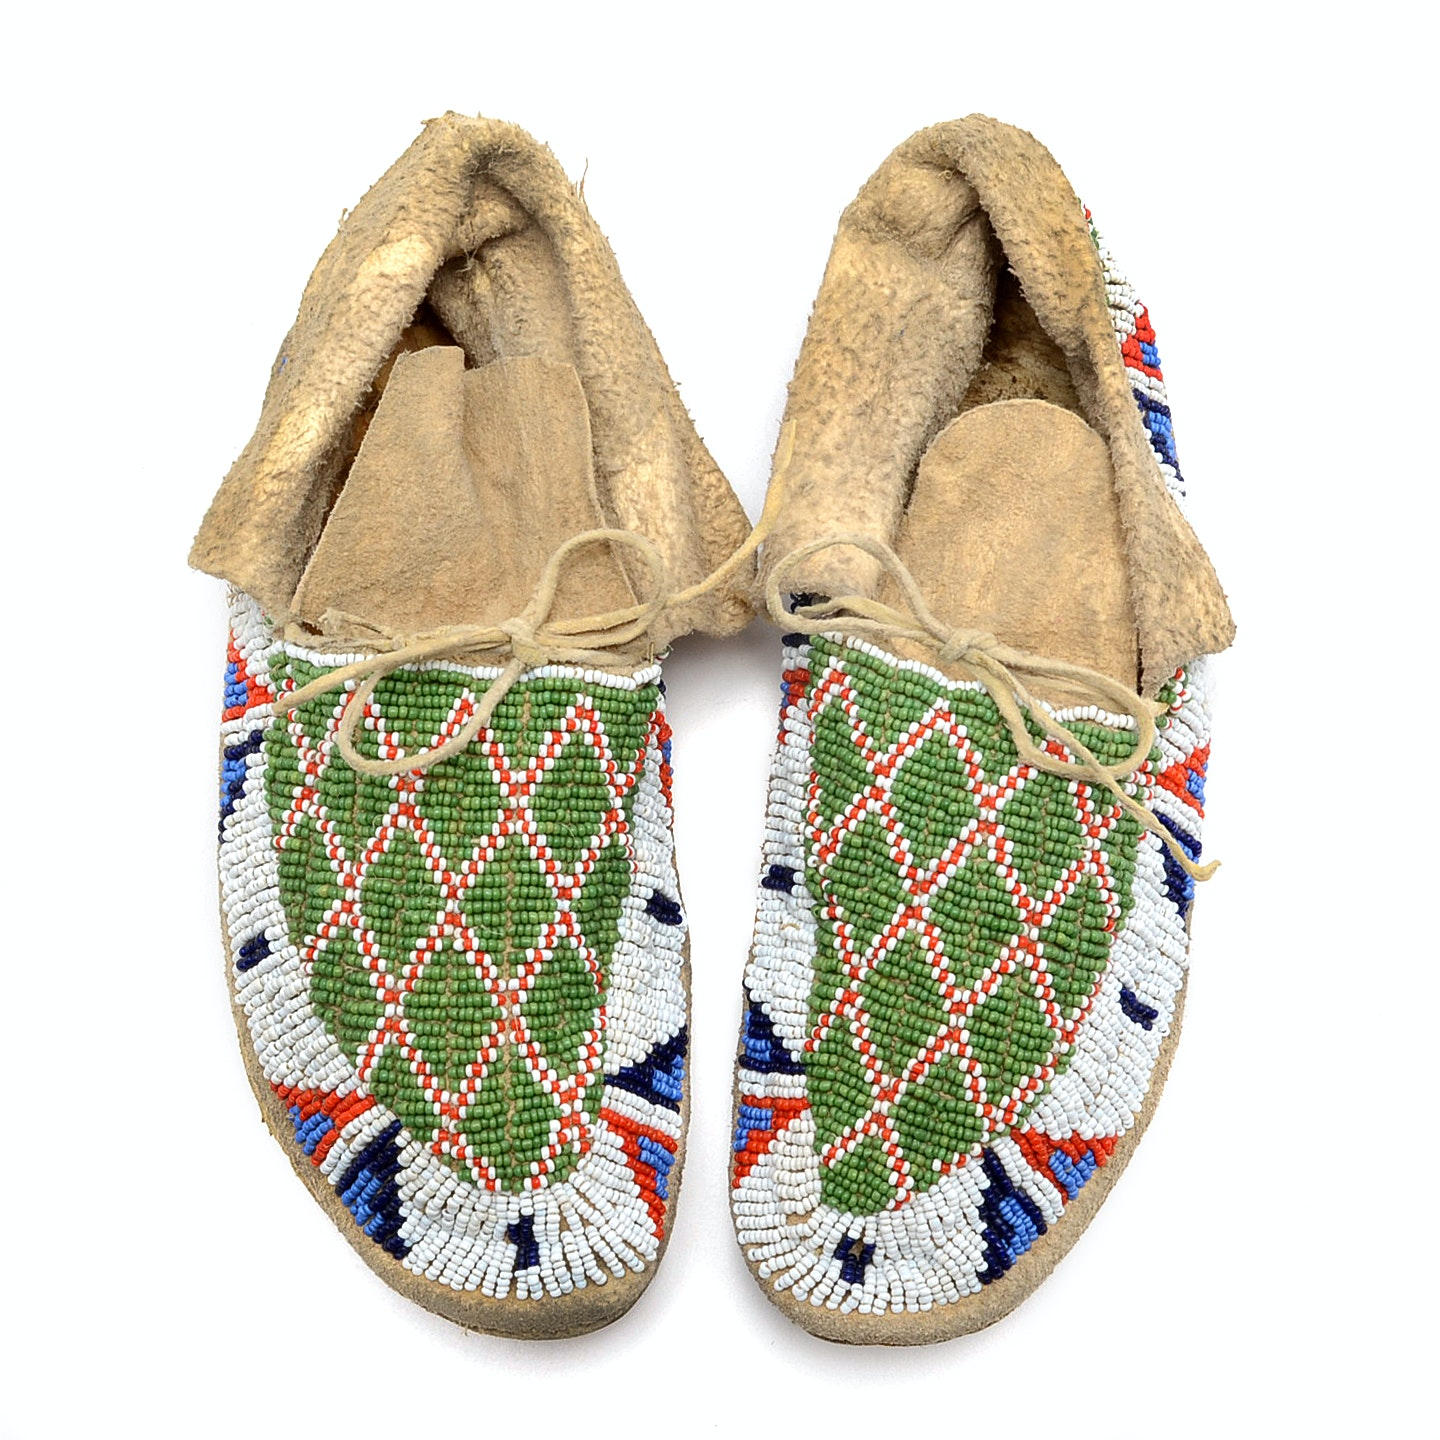 Circa 1900 Sioux American Indian Beaded Moccasins